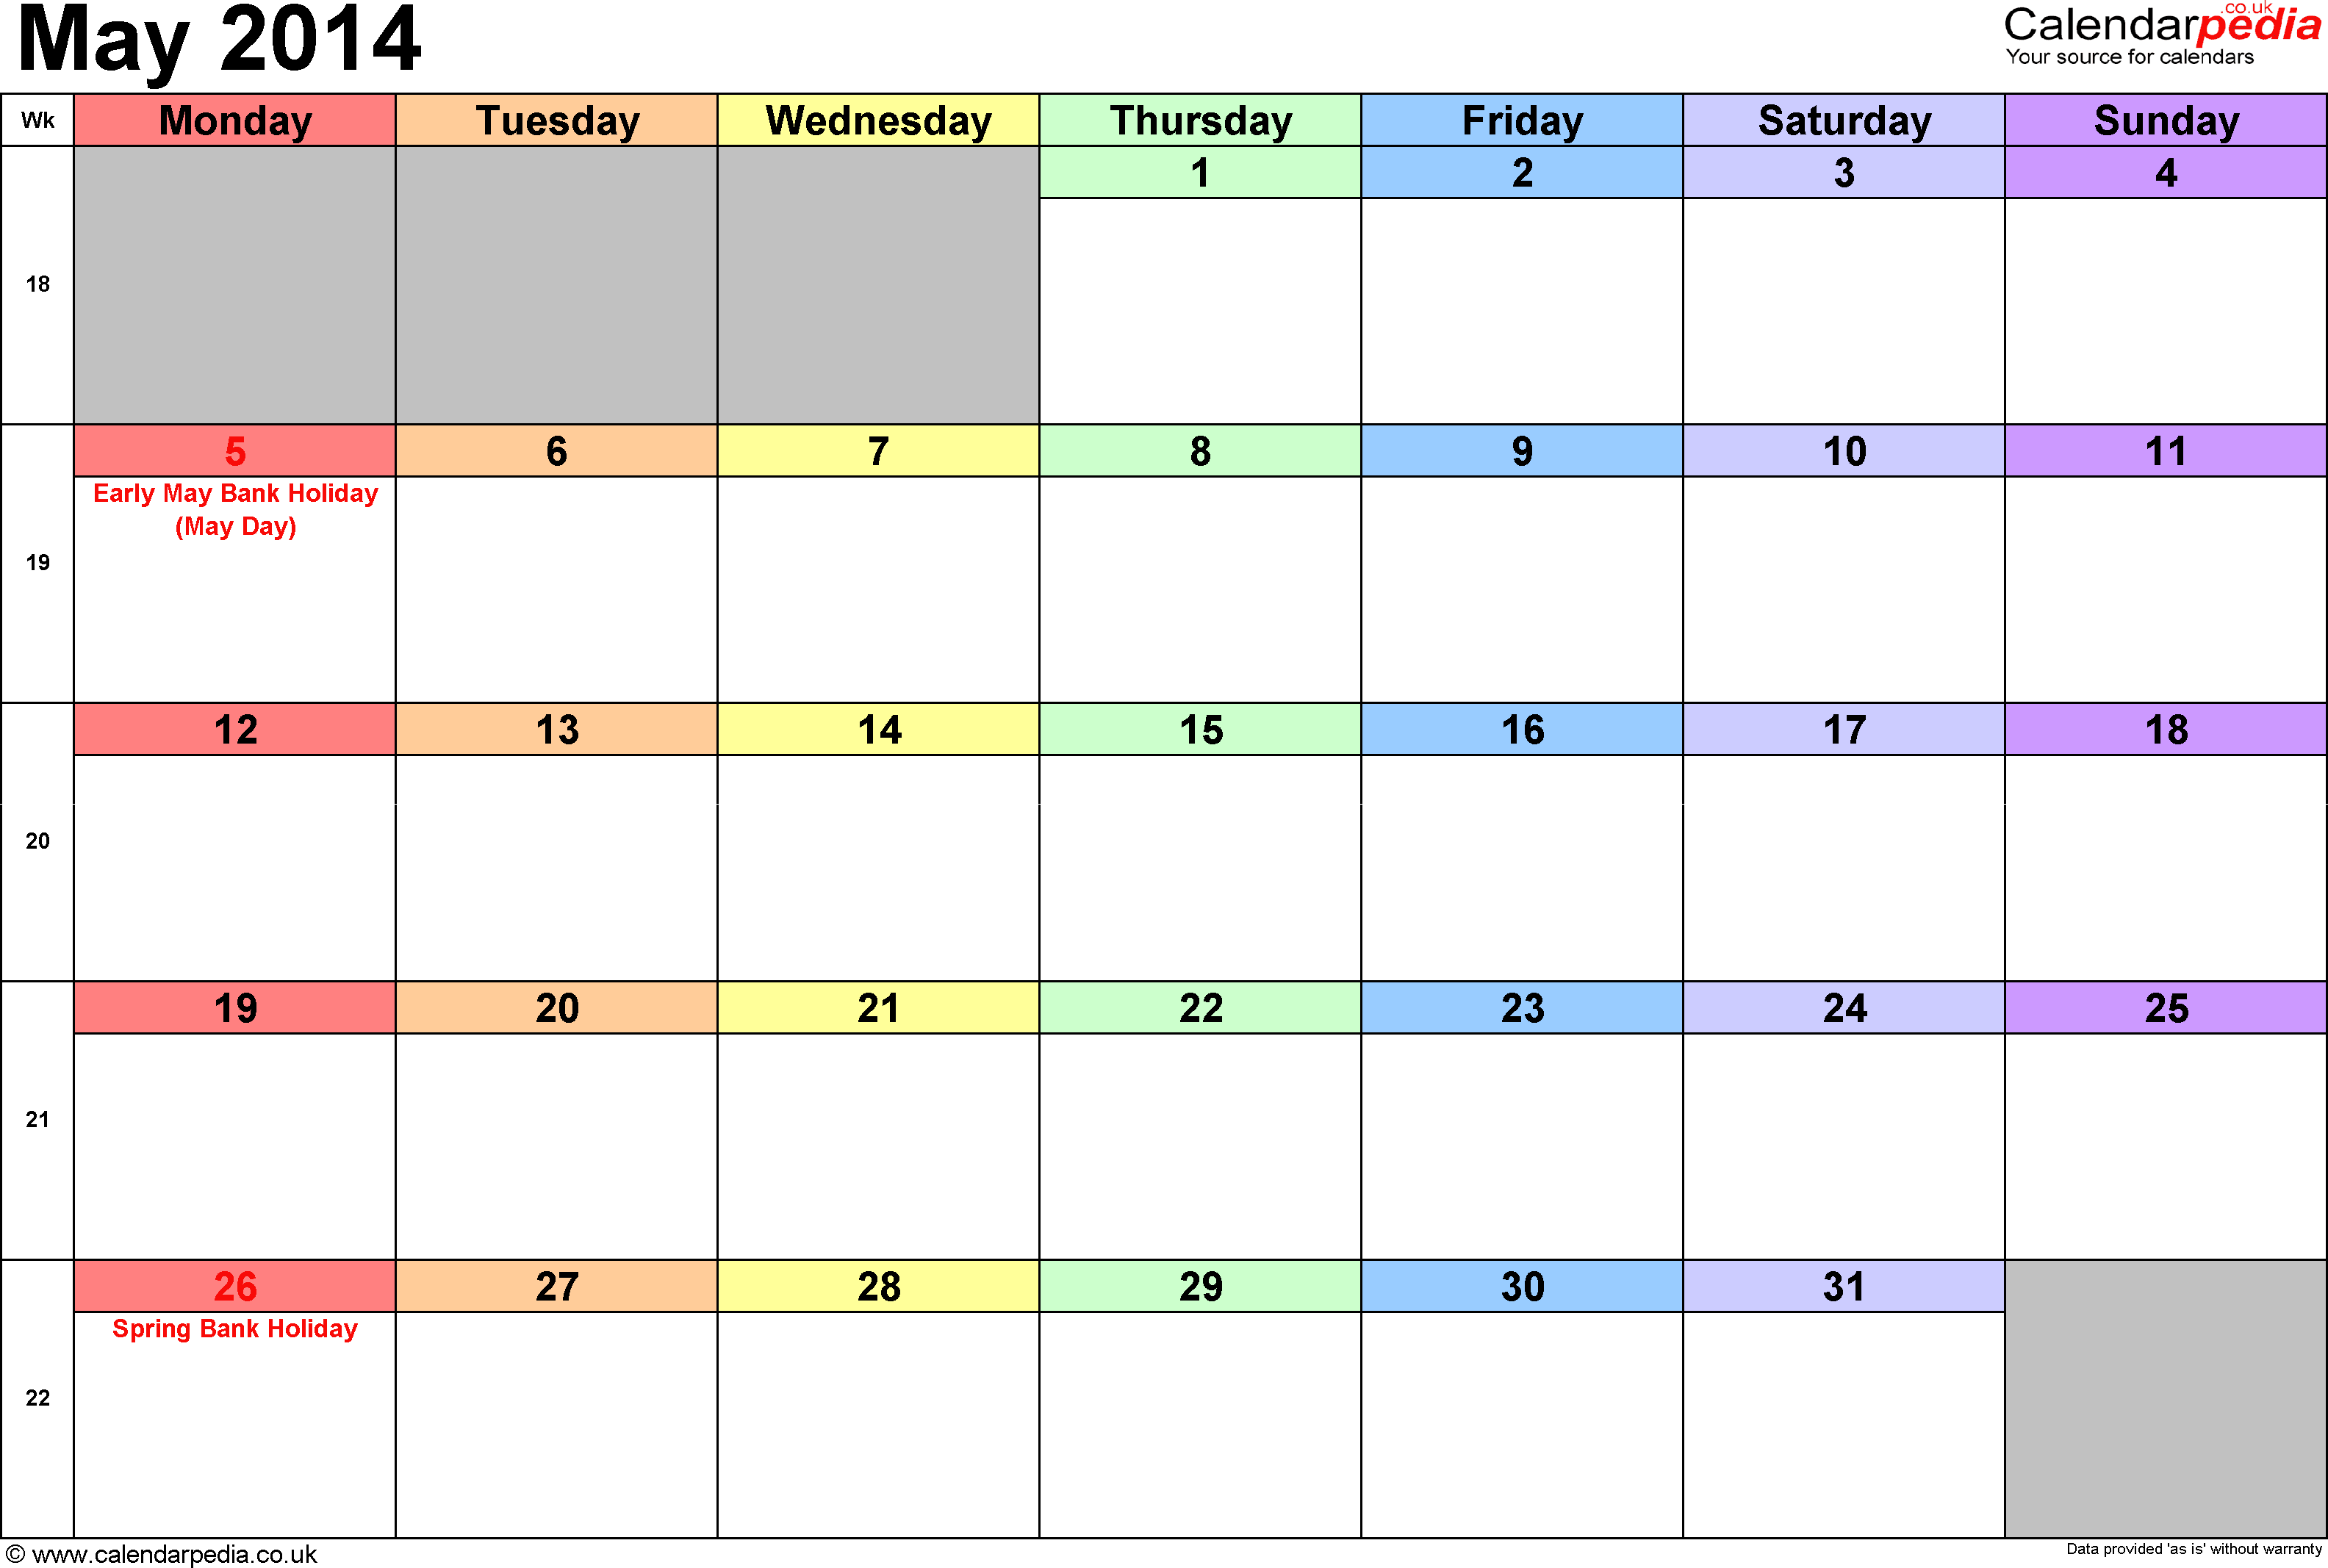 Calendar May 2014, landscape orientation, 1 page, with UK bank holidays and week numbers